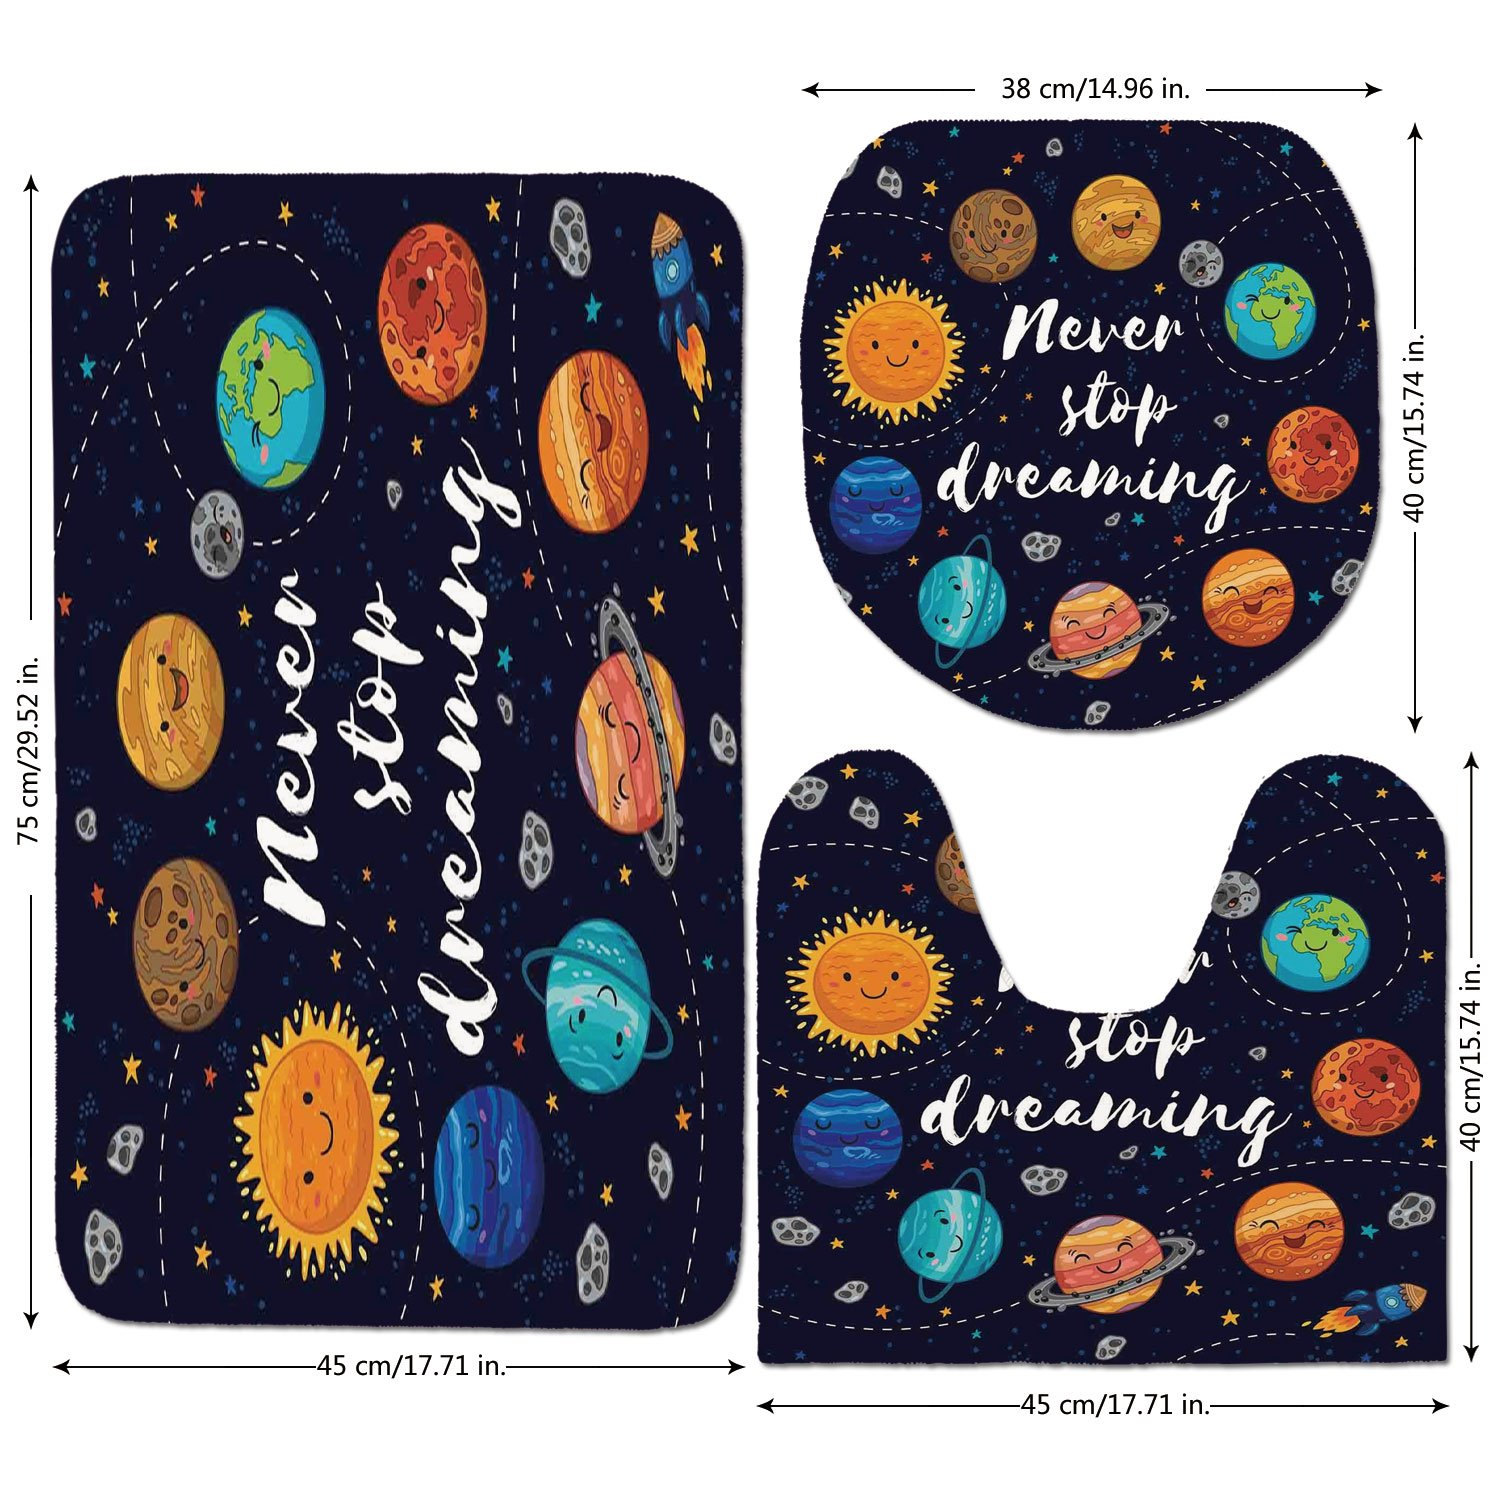 3 Piece Bathroom Mat Set,Quote,Outer Space Planets and Star Cluster Solar System Moon and Comets Sun Cosmos Illustration,Multi,Bath Mat,Bathroom Carpet Rug,Non-Slip